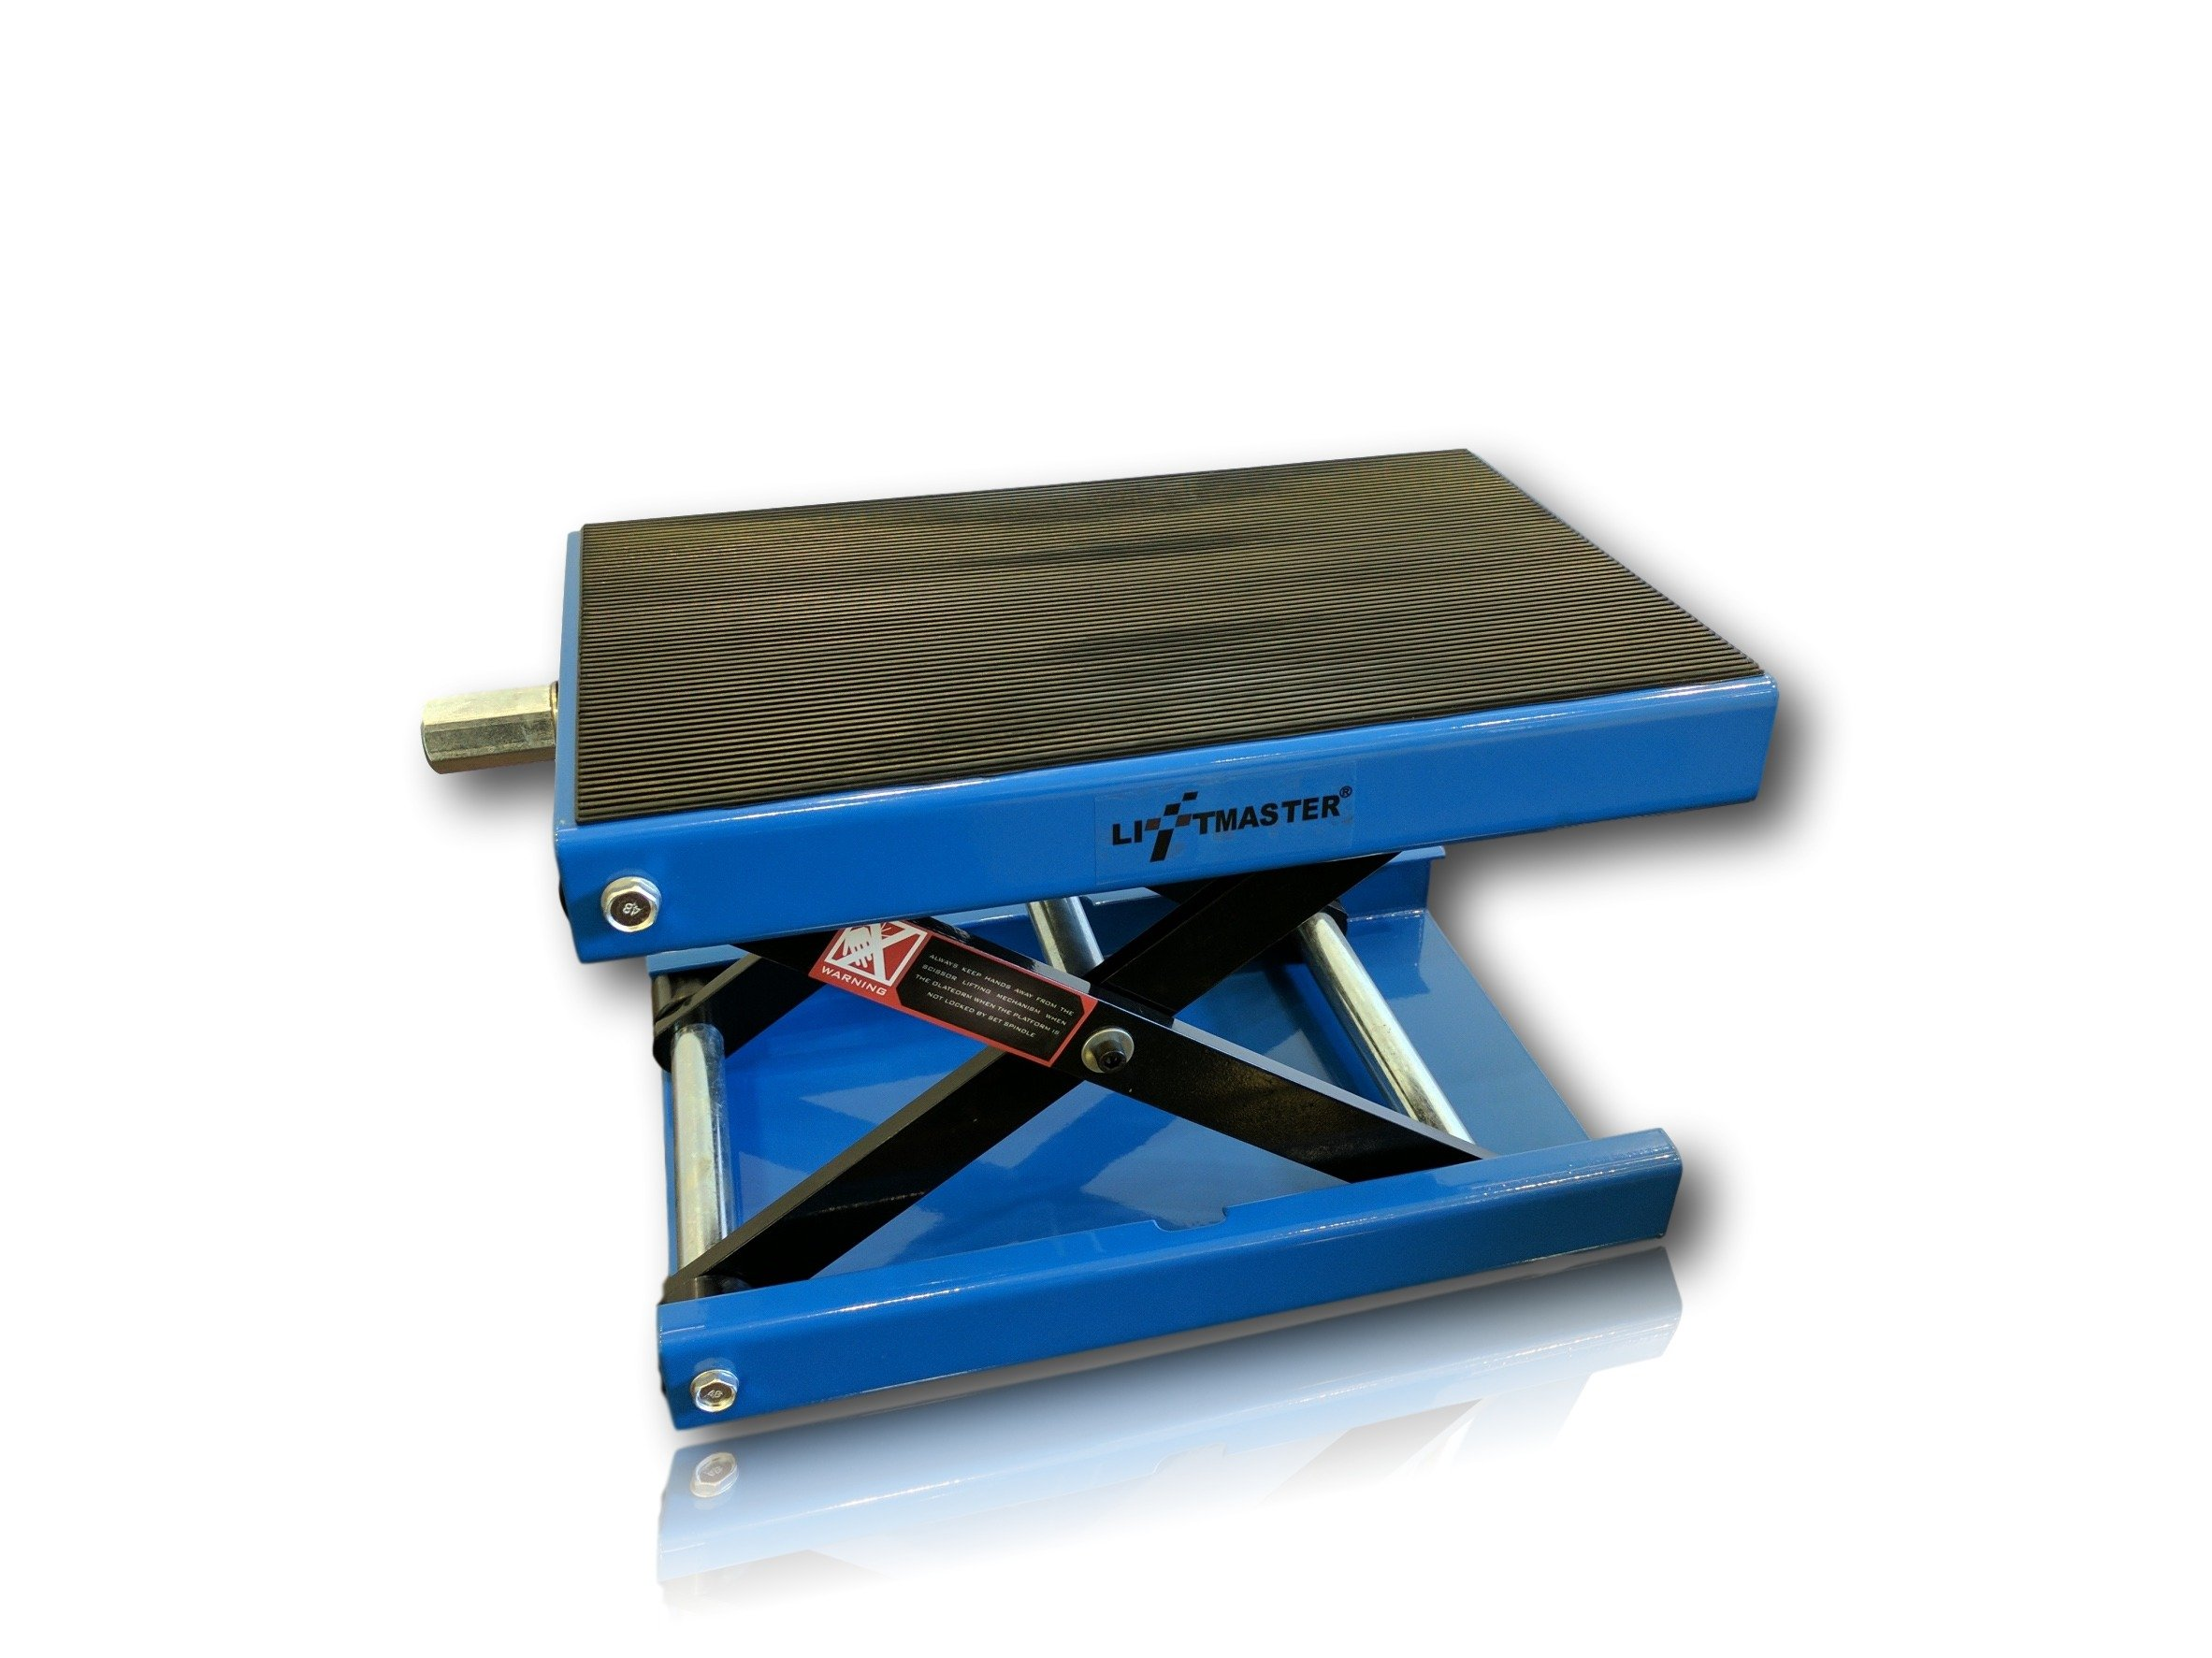 LiftMaster 1100 LB Wide Deck Motorcycle Center Scissor Lift Jack Hoist Stand Bikes ATVs by LiftMaster